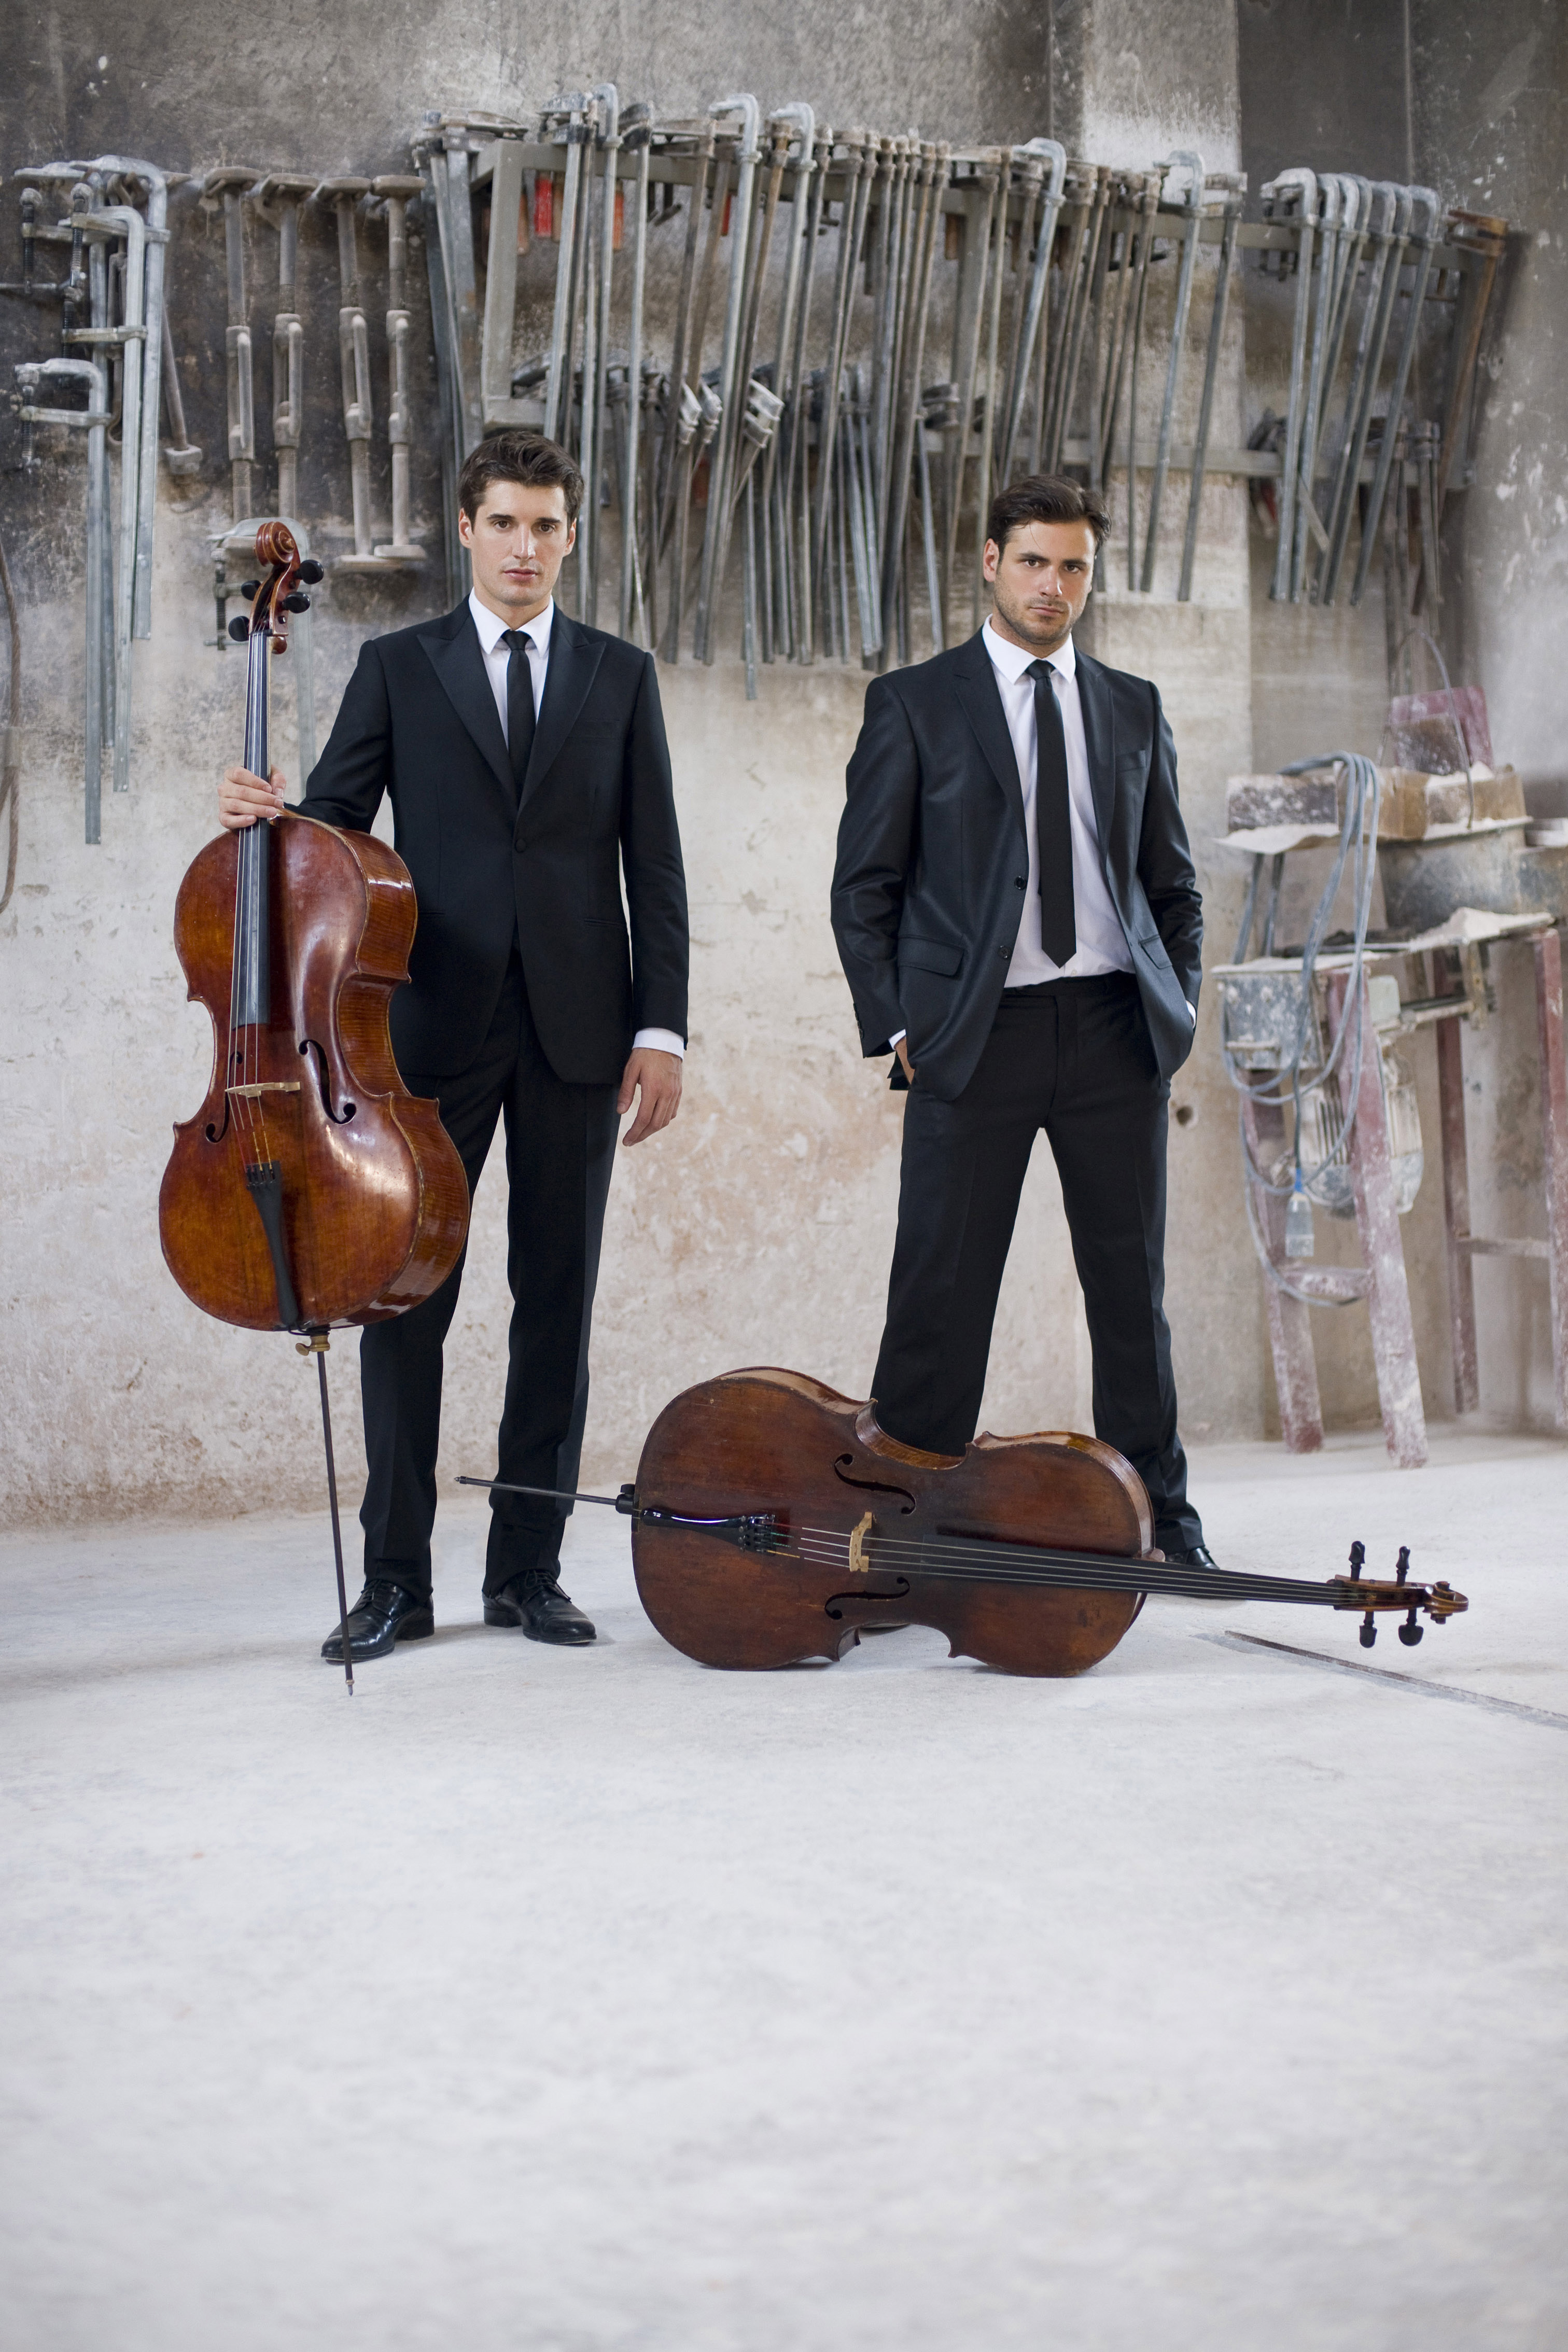 Luis Fonsi and Daddy Yankee's Global Hit Despacito Gets the 2CELLOS Treatment! Watch here!